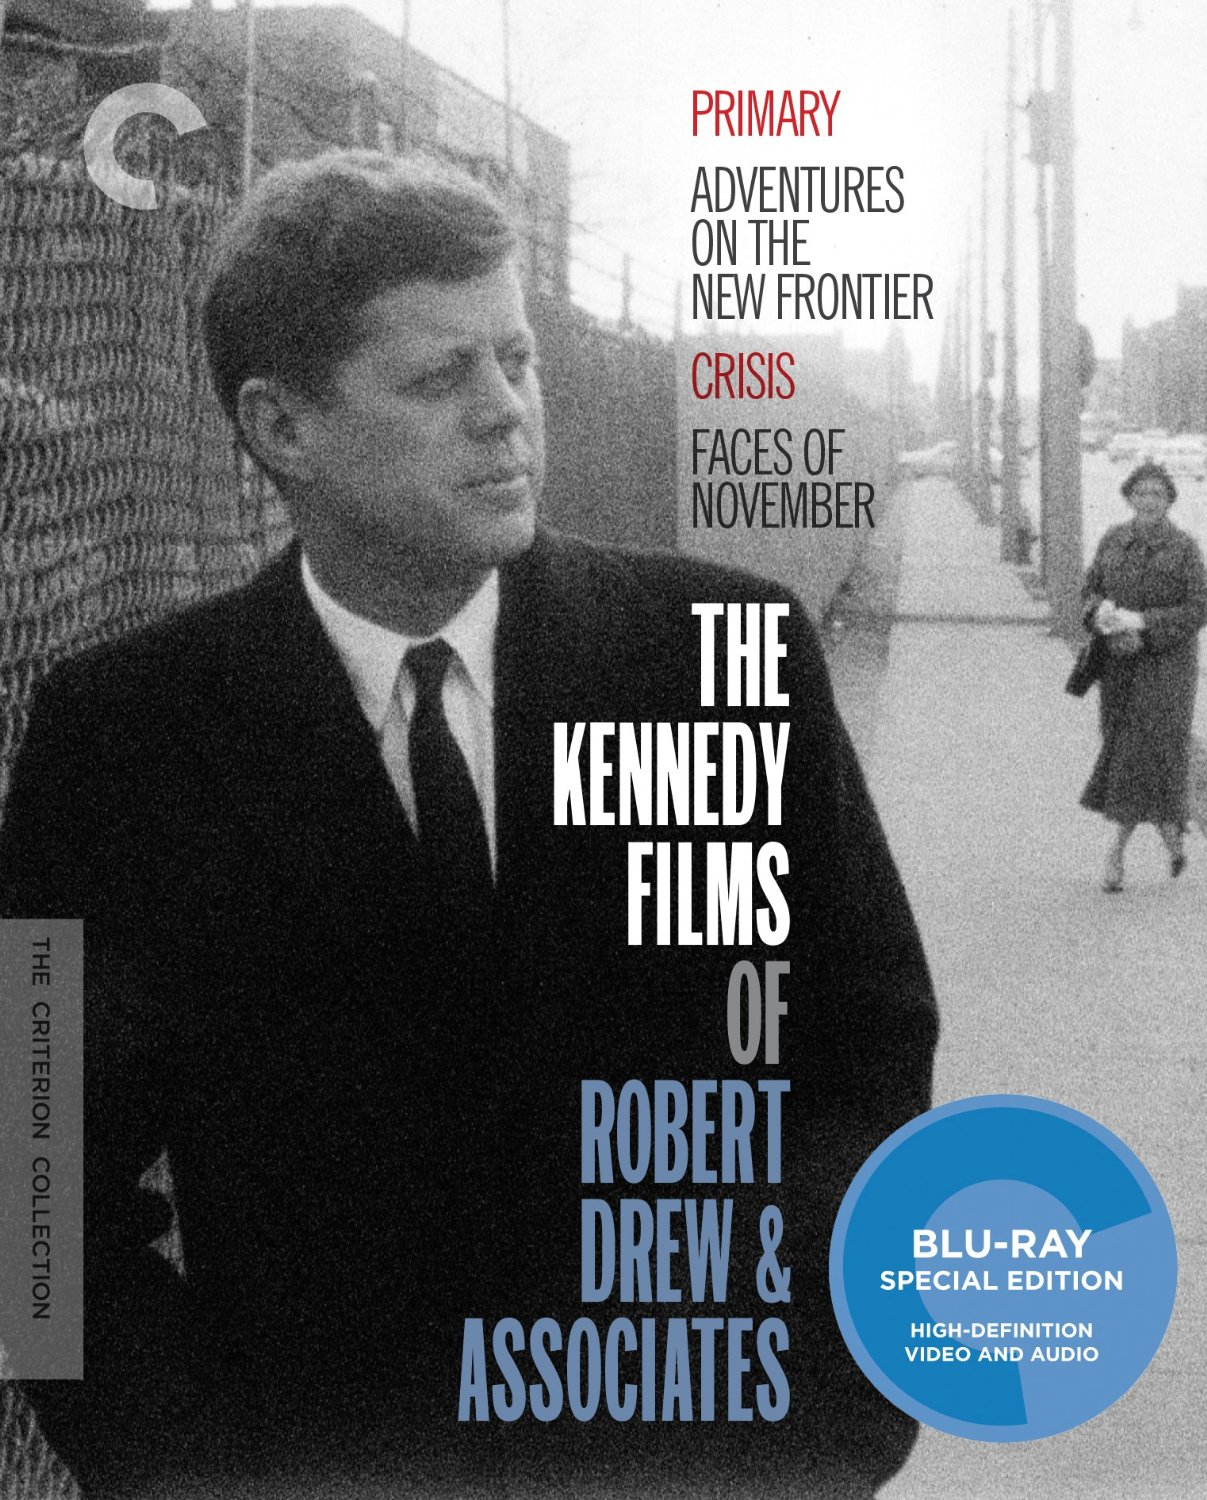 The Kennedy Films of Robert Drew & Associates [Movie] - The Kennedy Films of Robert Drew & Associates [Criterion Collection]